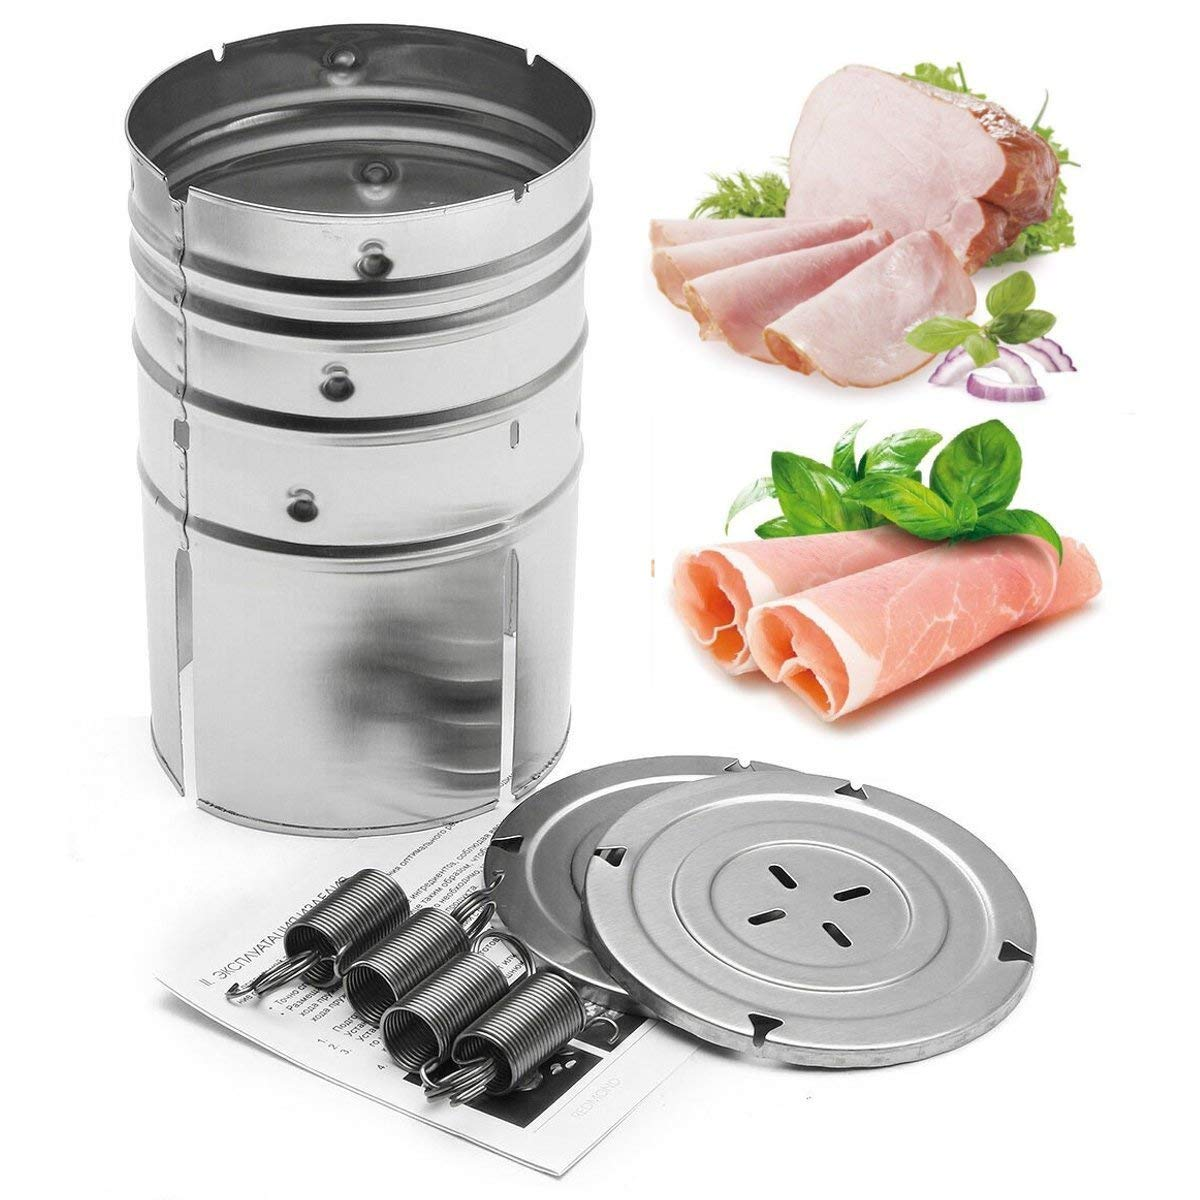 Stainless Steel Press Ham Maker Meat Fish Poultry Seafood Homemade Specialties K